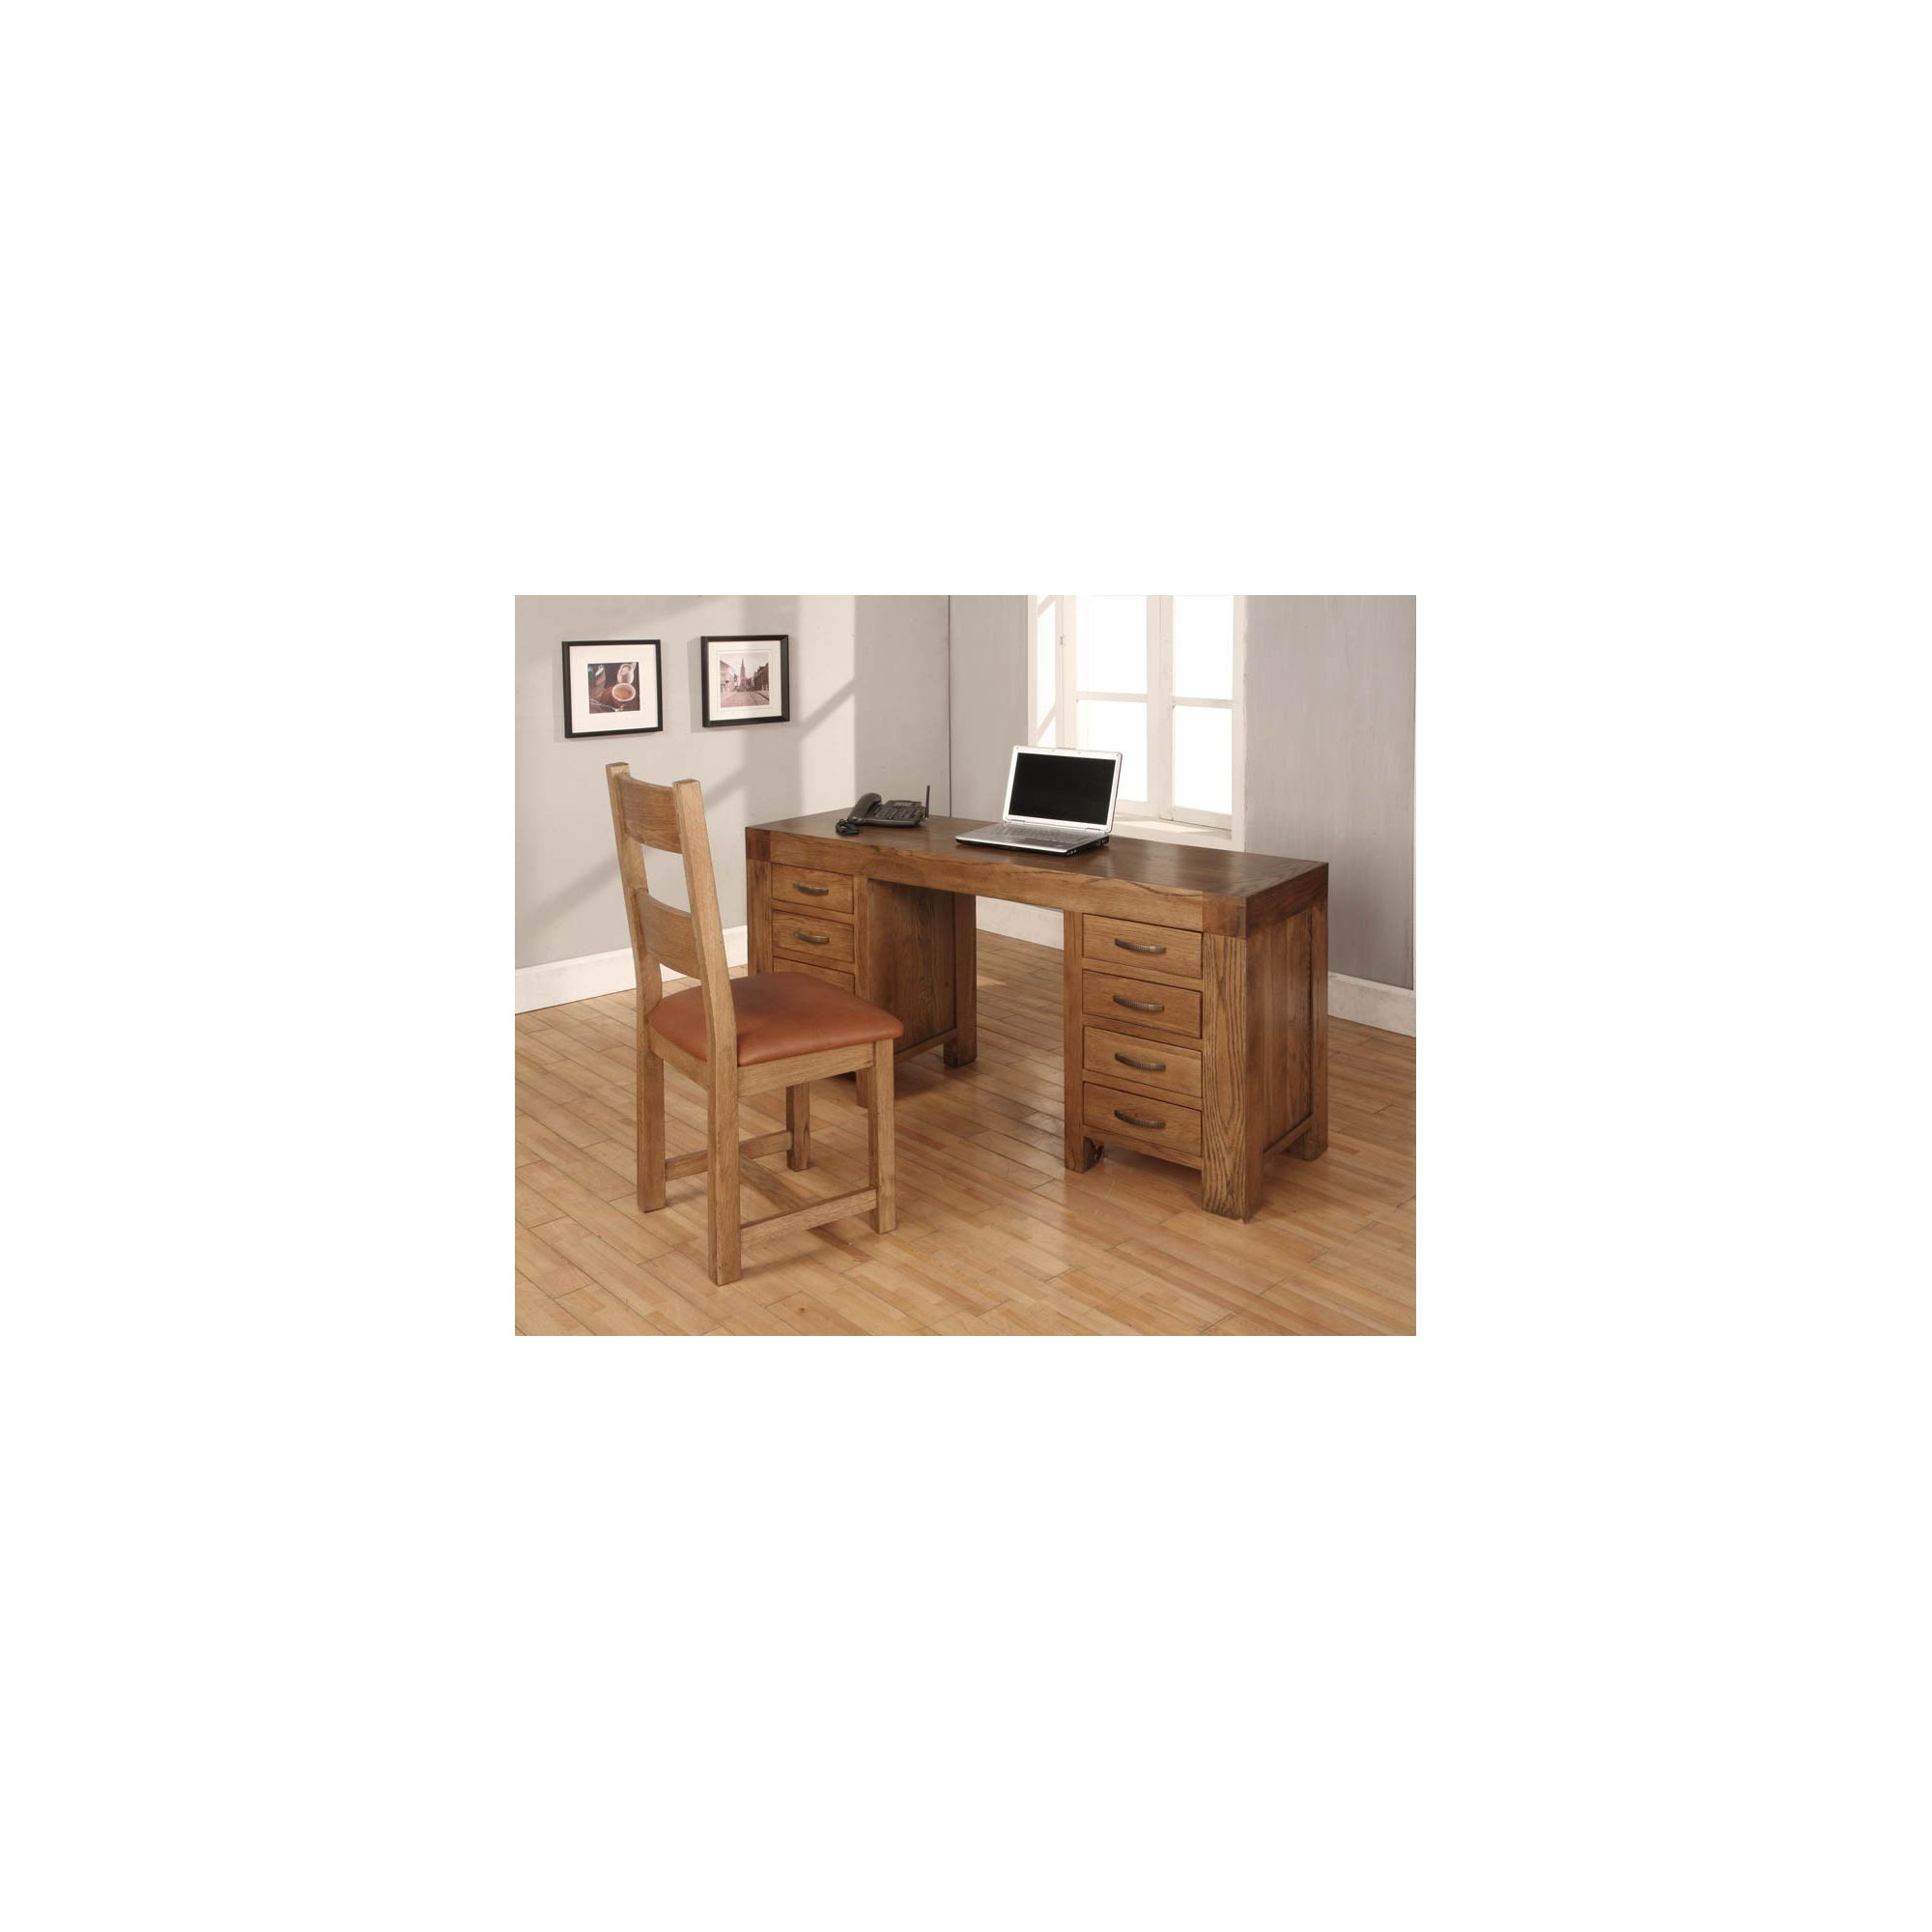 Hawkshead Eight Drawers Desk Dressing Table in Rich Patina at Tesco Direct